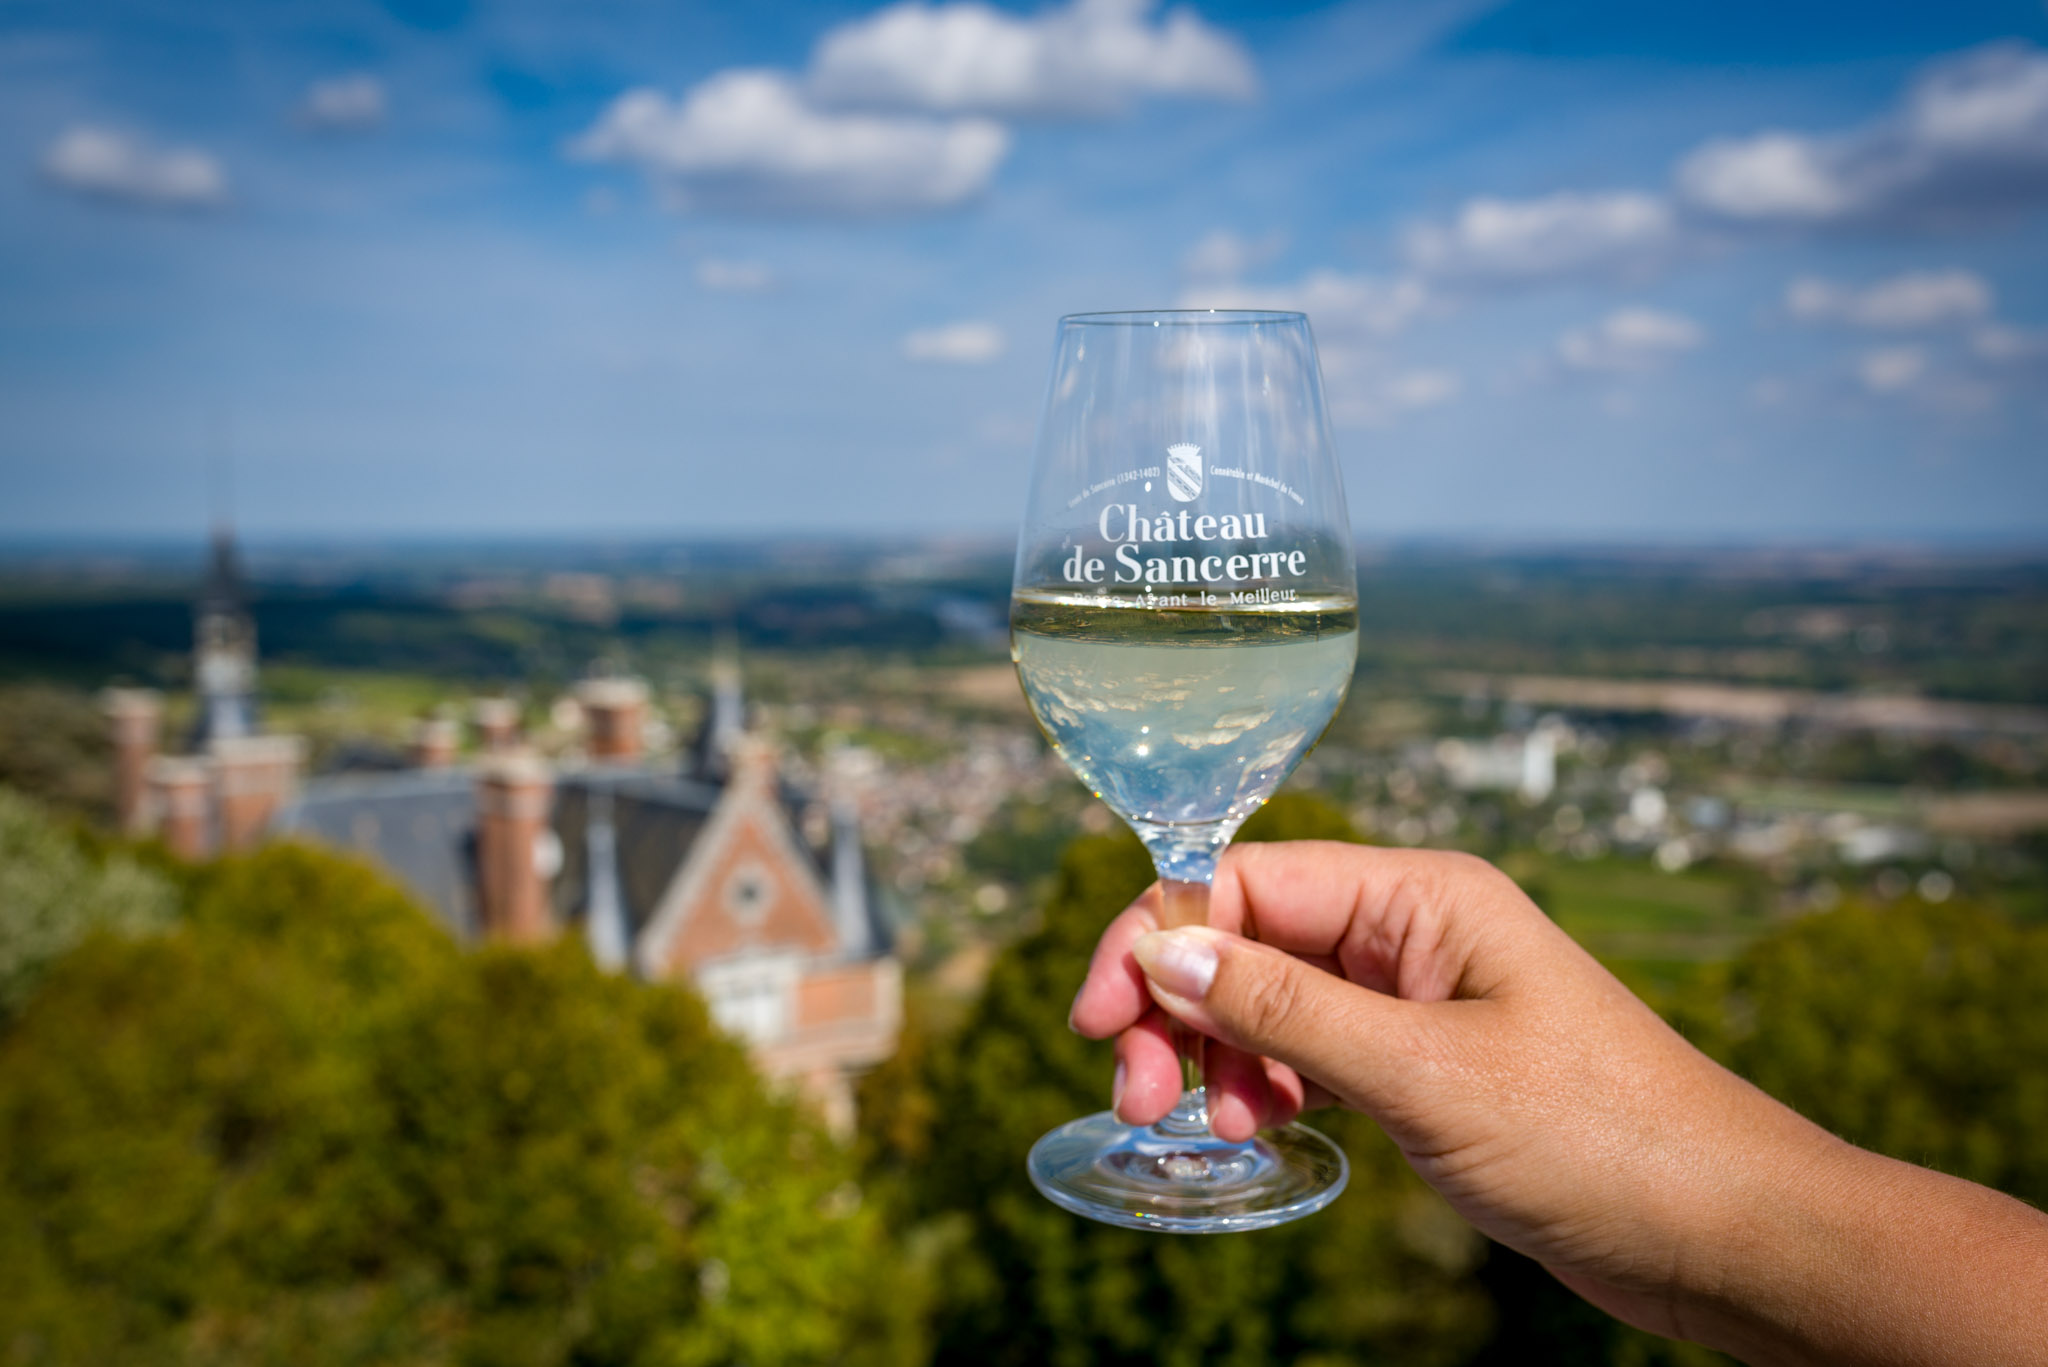 Chateau de Sancerre - Glass at the top of the Fiefdom Tower